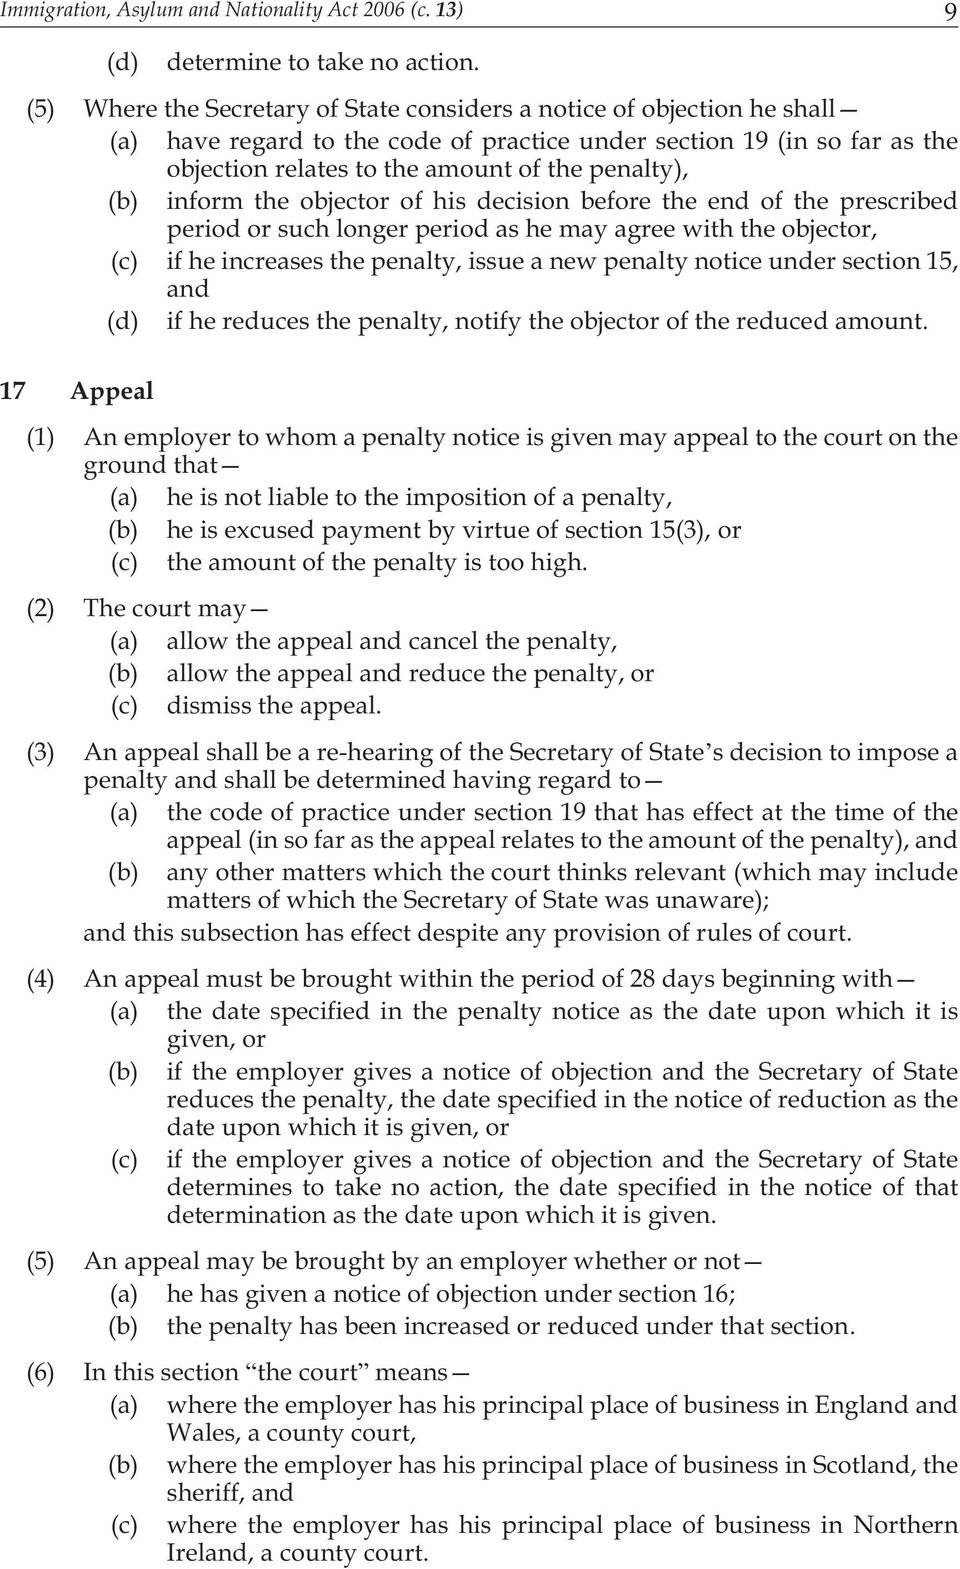 (b) inform the objector of his decision before the end of the prescribed period or such longer period as he may agree with the objector, (c) if he increases the penalty, issue a new penalty notice